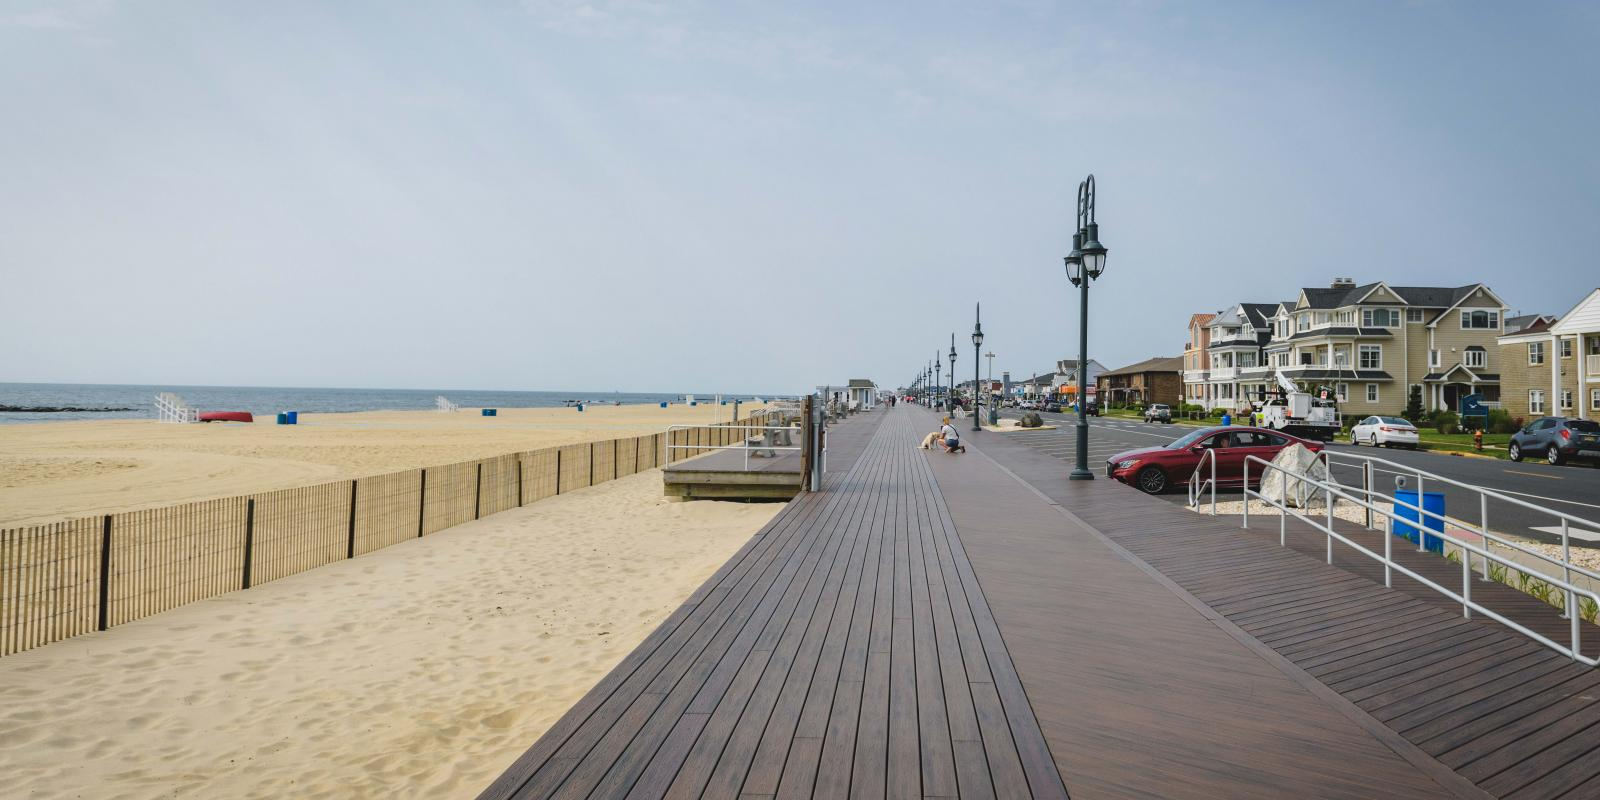 7 Things To Do At The Jersey Shore The Ultimate 2019 Guide